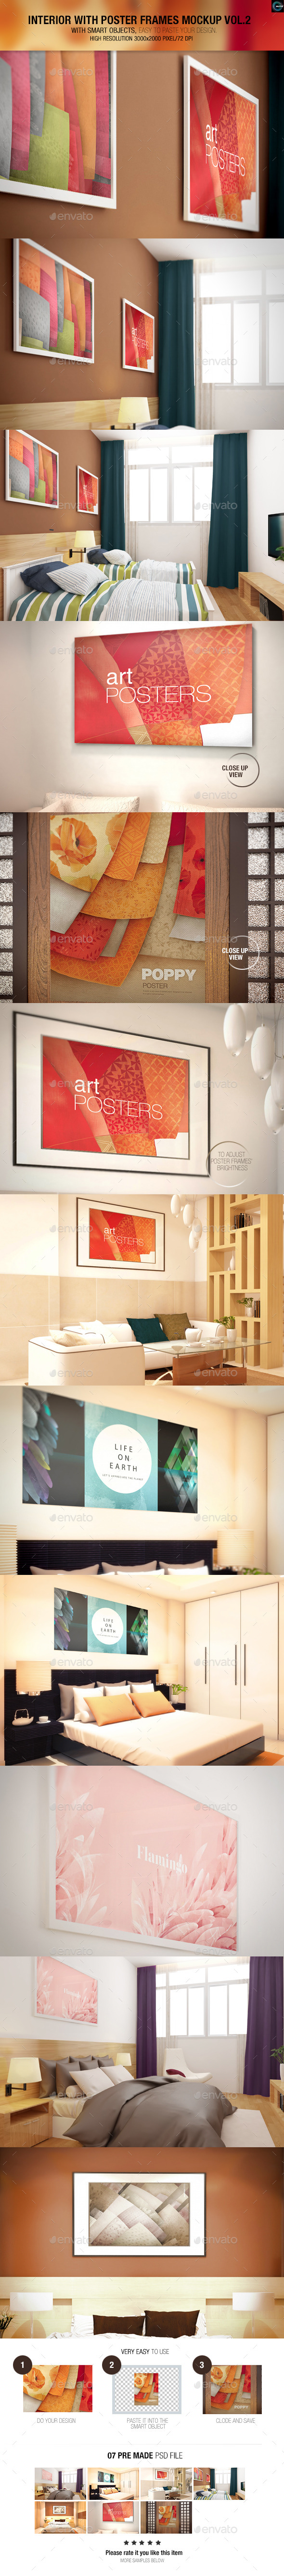 GraphicRiver Interior With Poster Frames Mock-up Vol.2 9854757